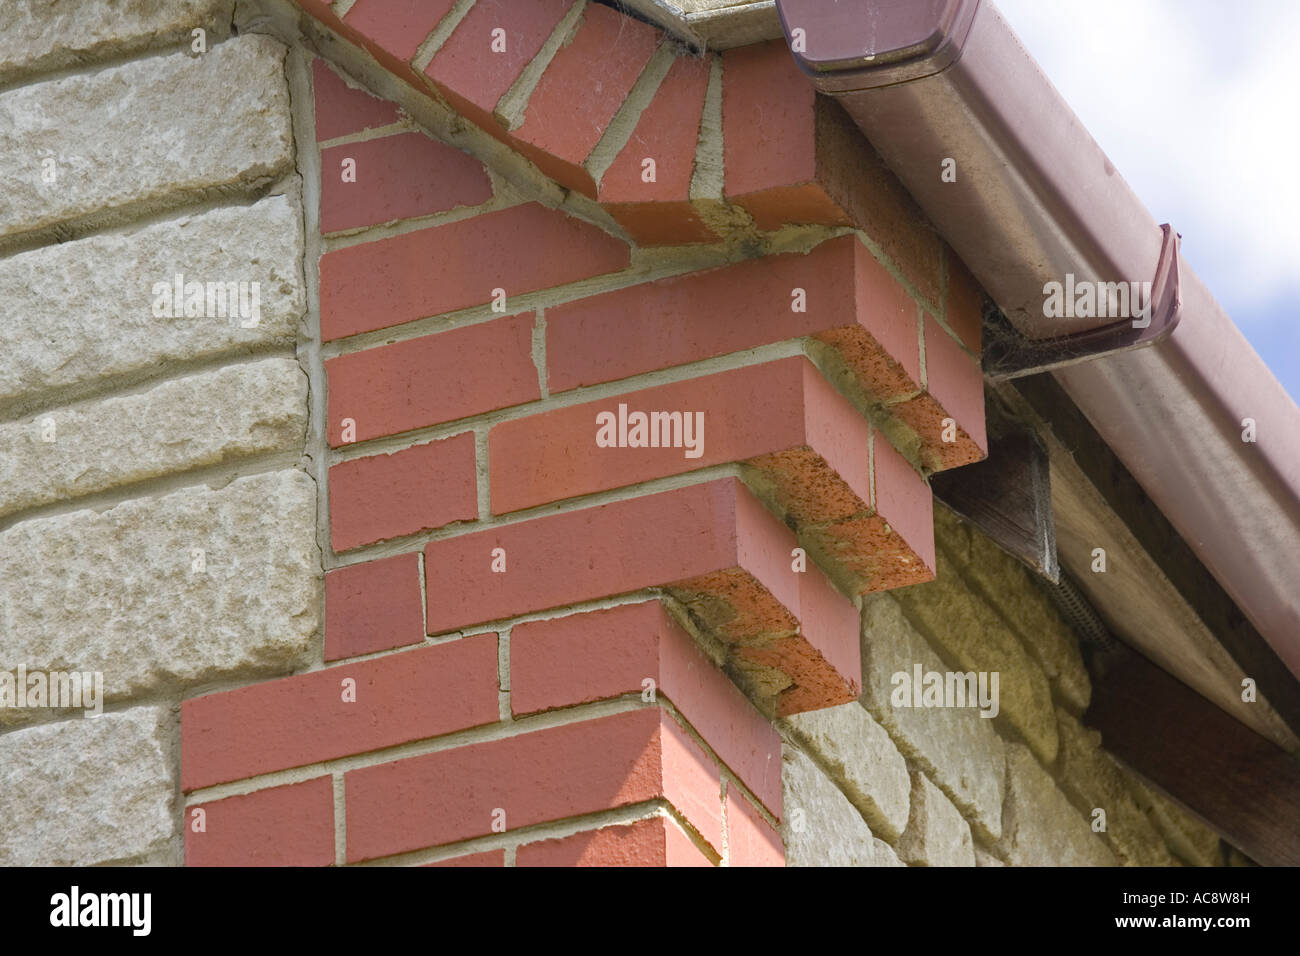 Decorative Fireplace Corbelling Or Brickwork Corbels At Gable Corners Of House